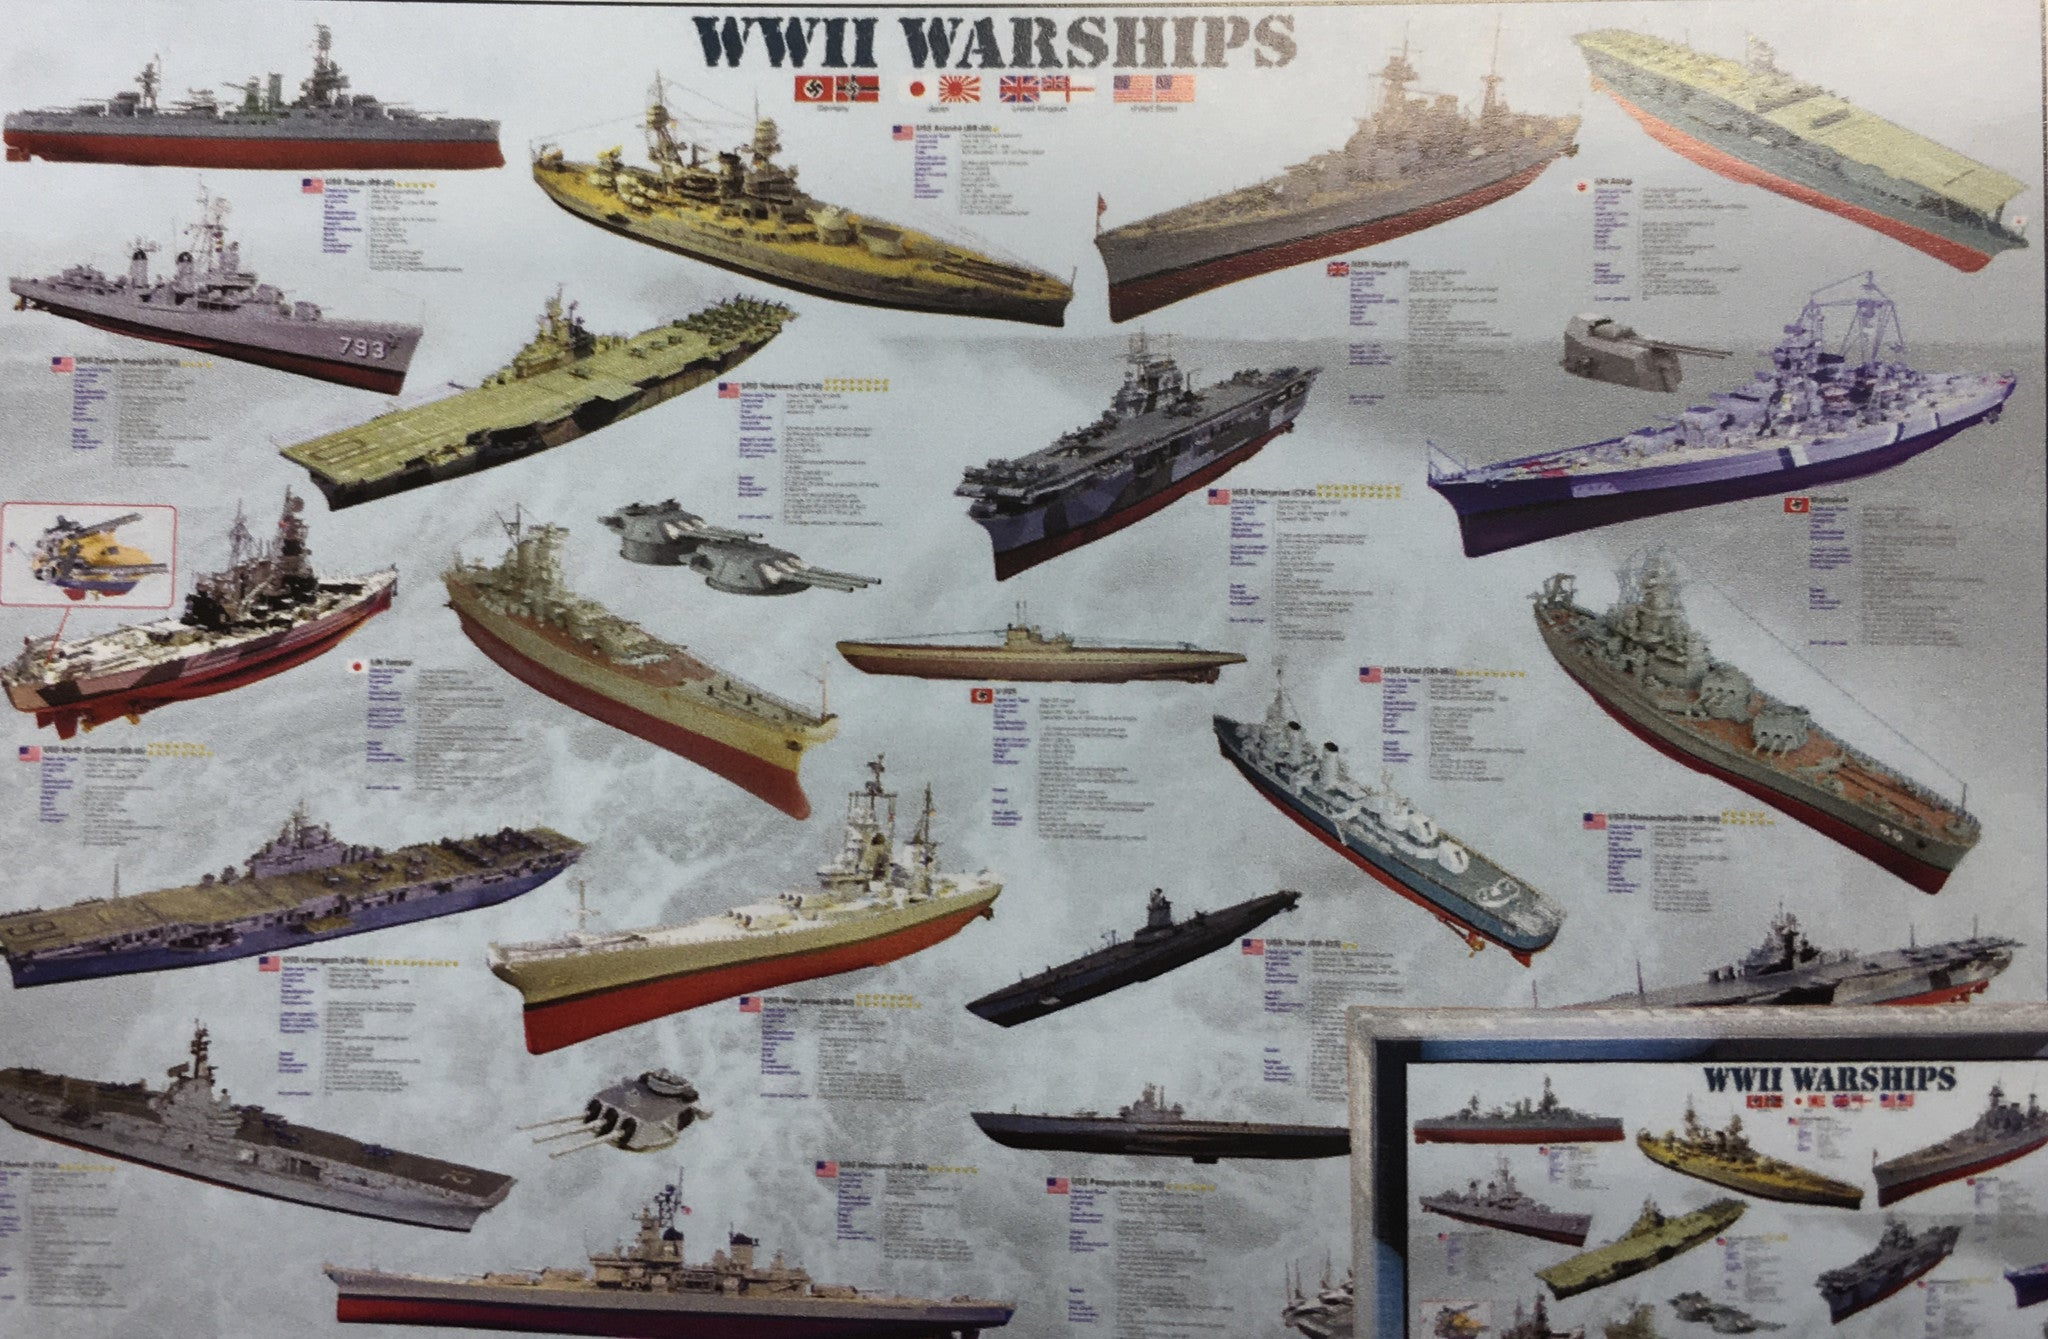 WWII Warships Poster